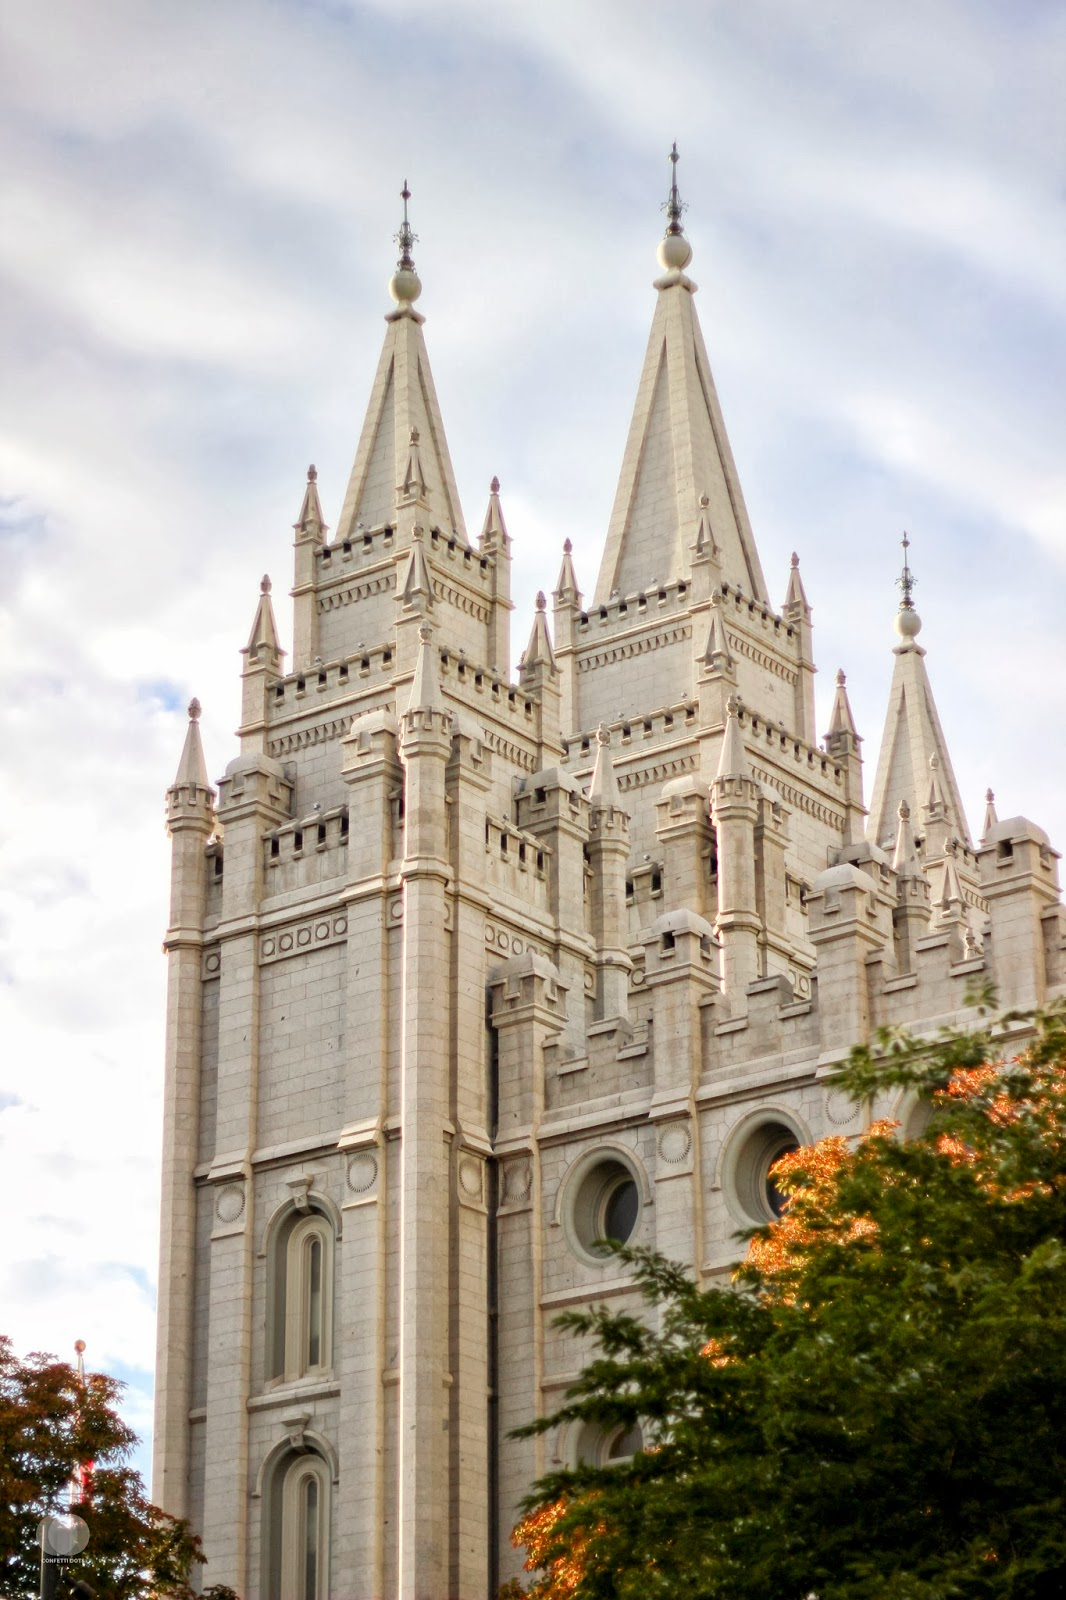 Salt Lake City Temple | Confetti Dots Blog. All Rights Reserved.